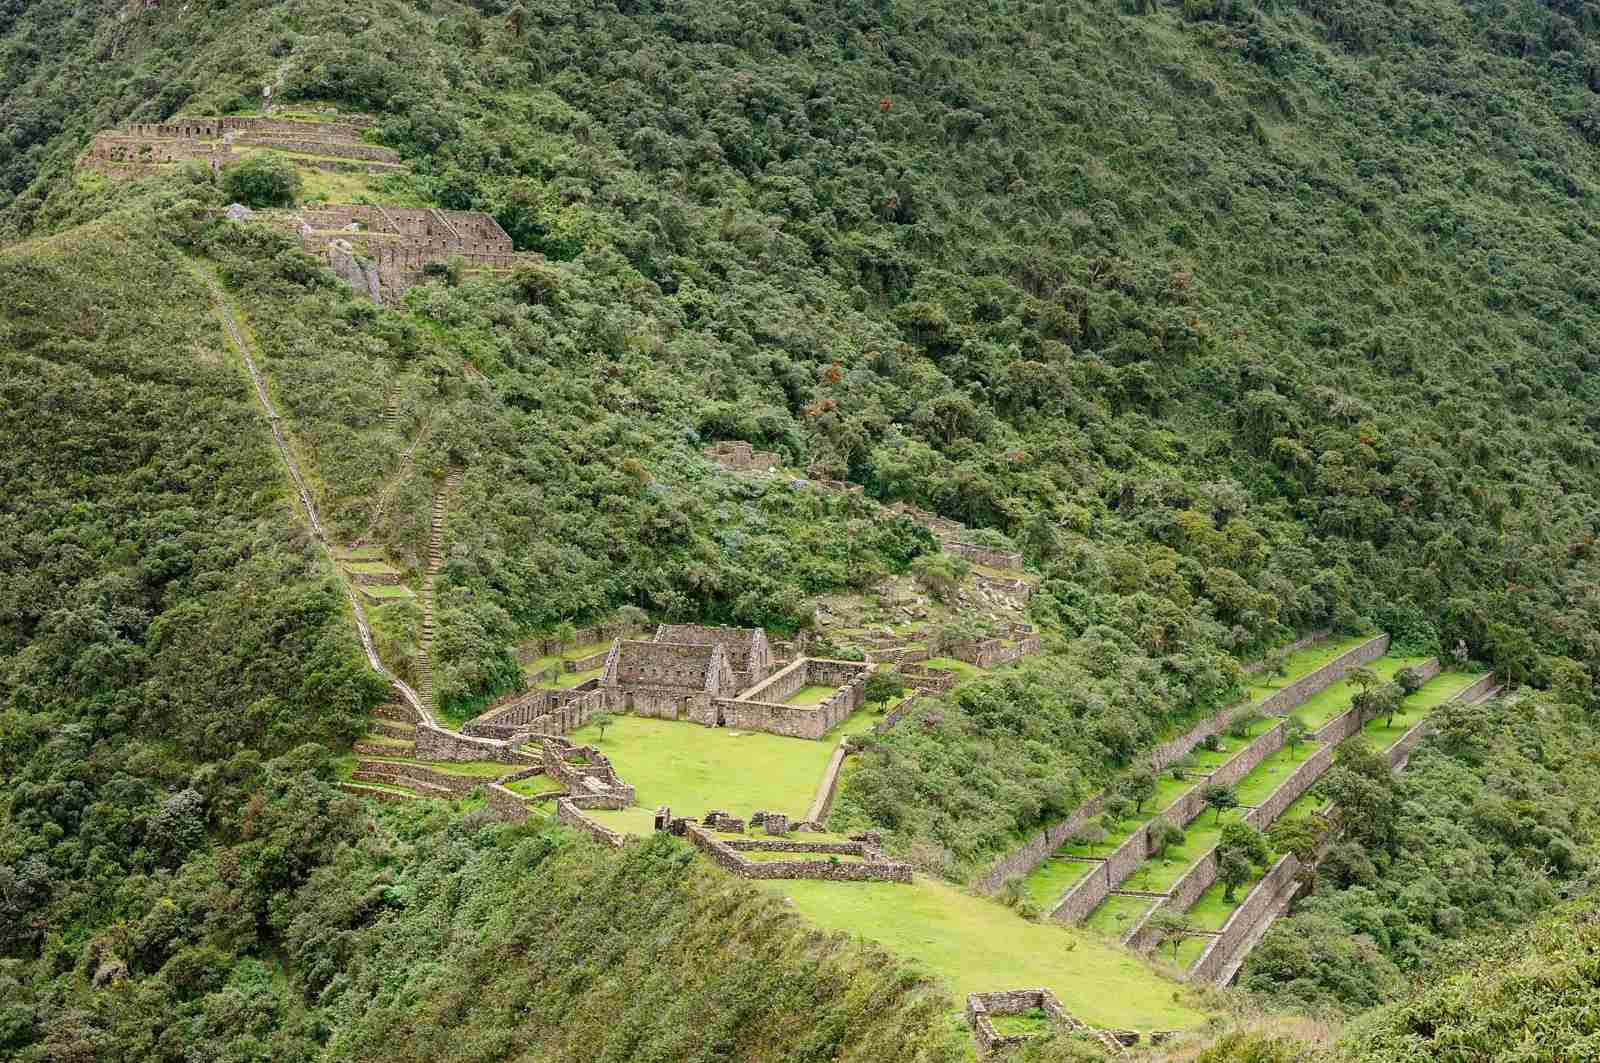 Choquequirao, the lost ruins in Peru. (Photo by rchphoto / iStock / Getty Images)